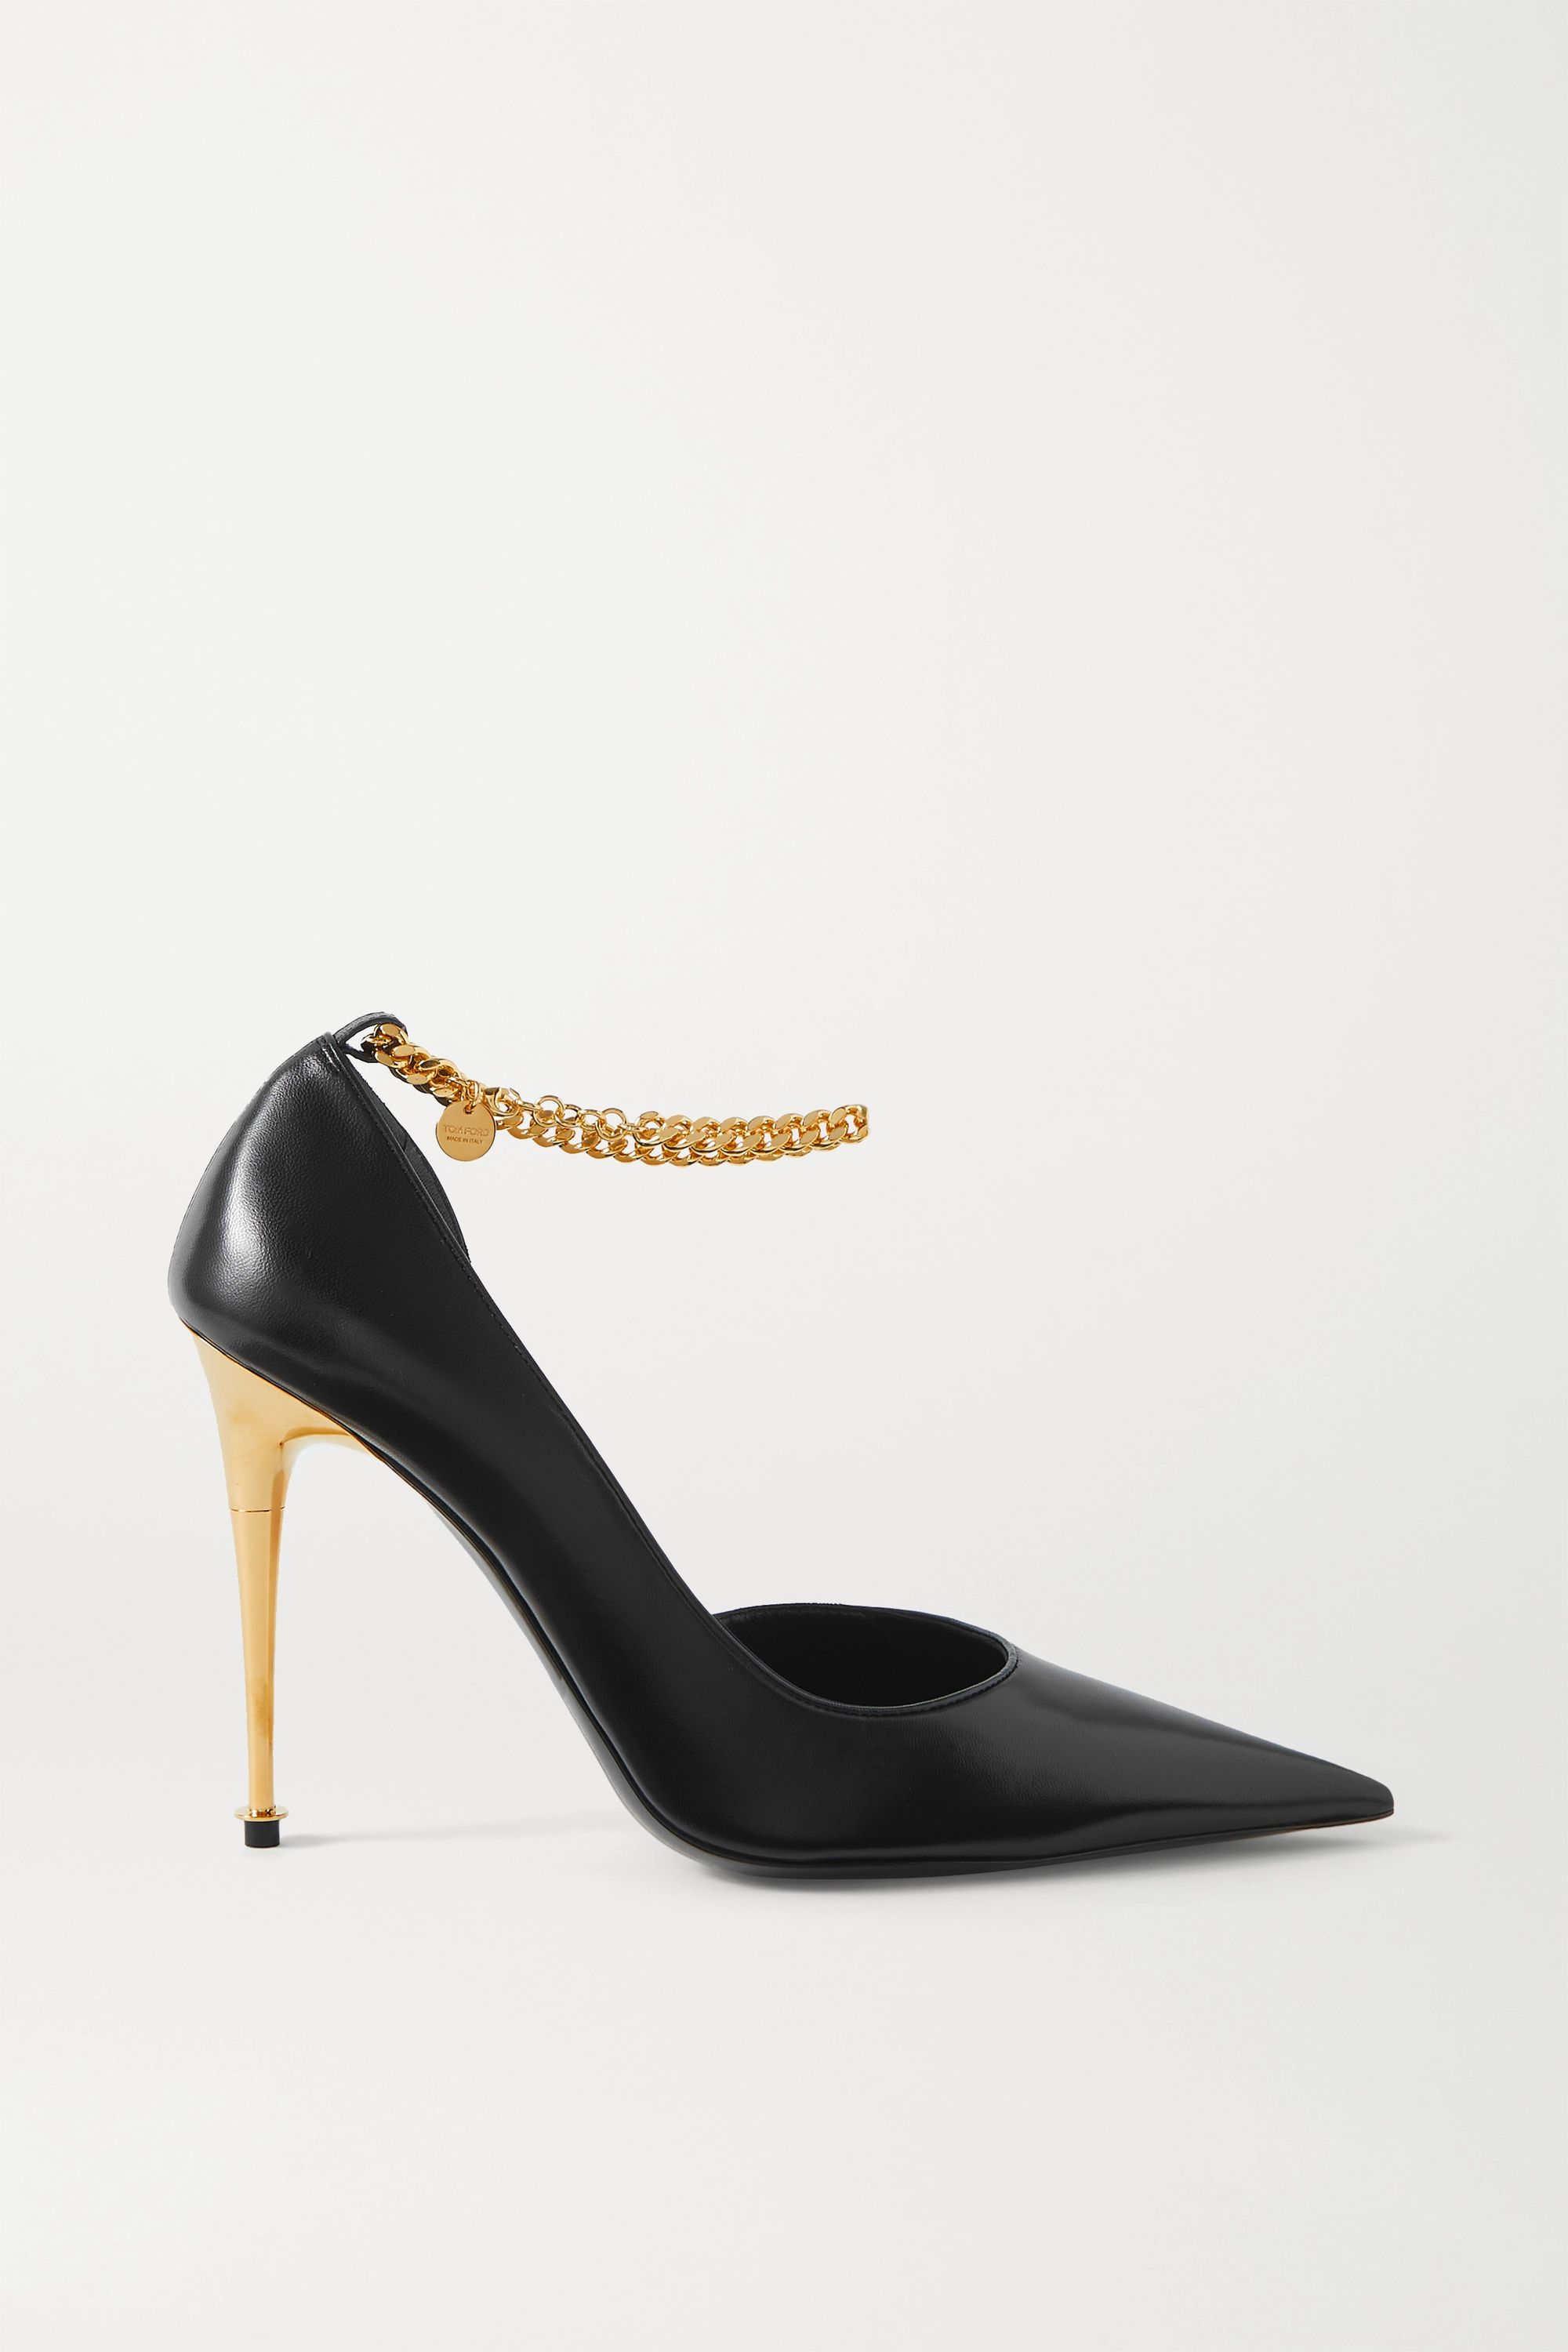 TOM FORD Chain-embellished leather pumps